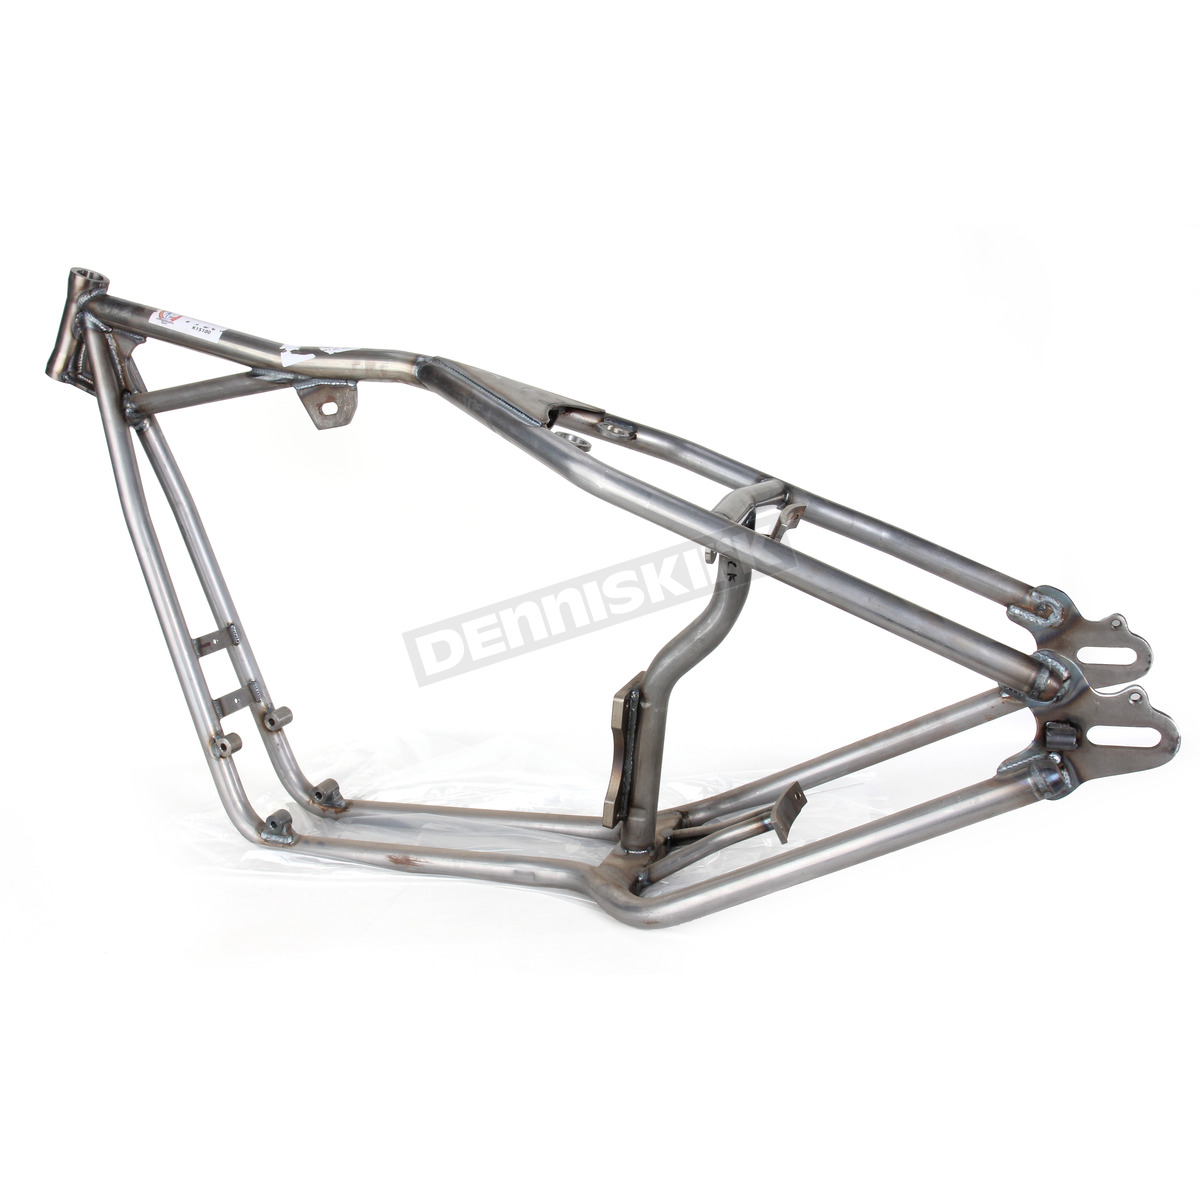 Kraft Tech Rigid Frame for 130 Tire - K15100 Harley-Davidson ...